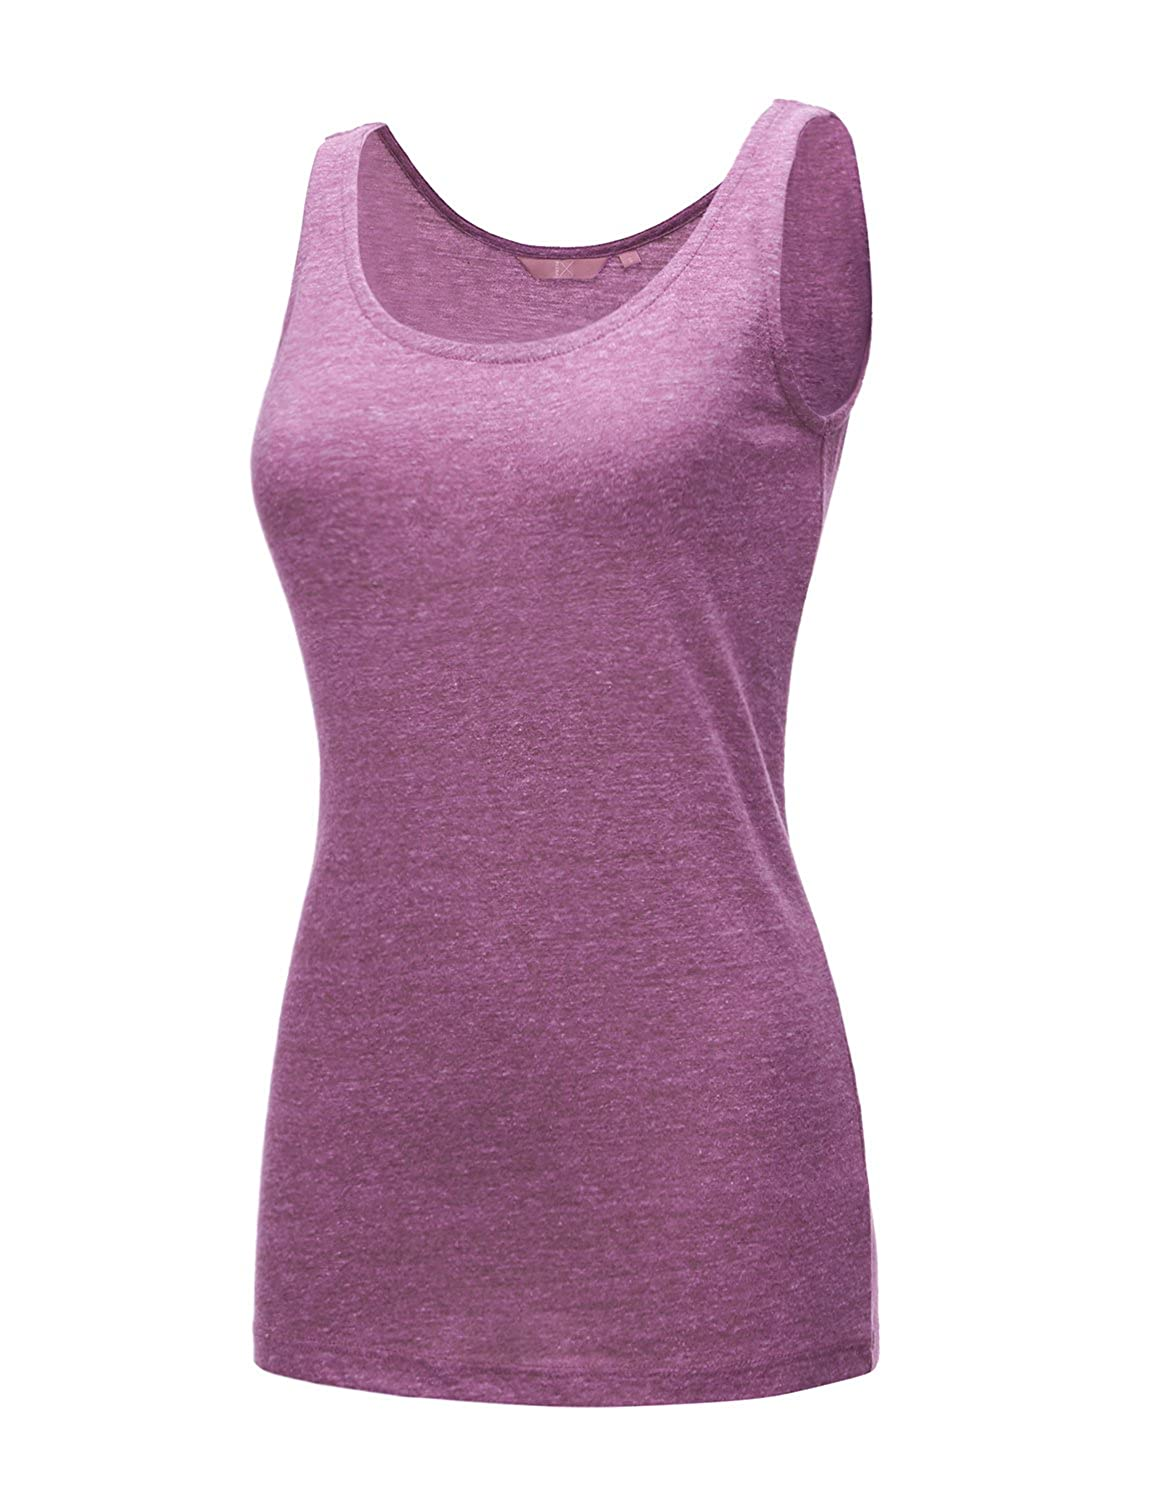 17507_purple Regna X [RESTOCK Activewear Running Workouts Clothes Yoga Racerback Tank Tops for Women